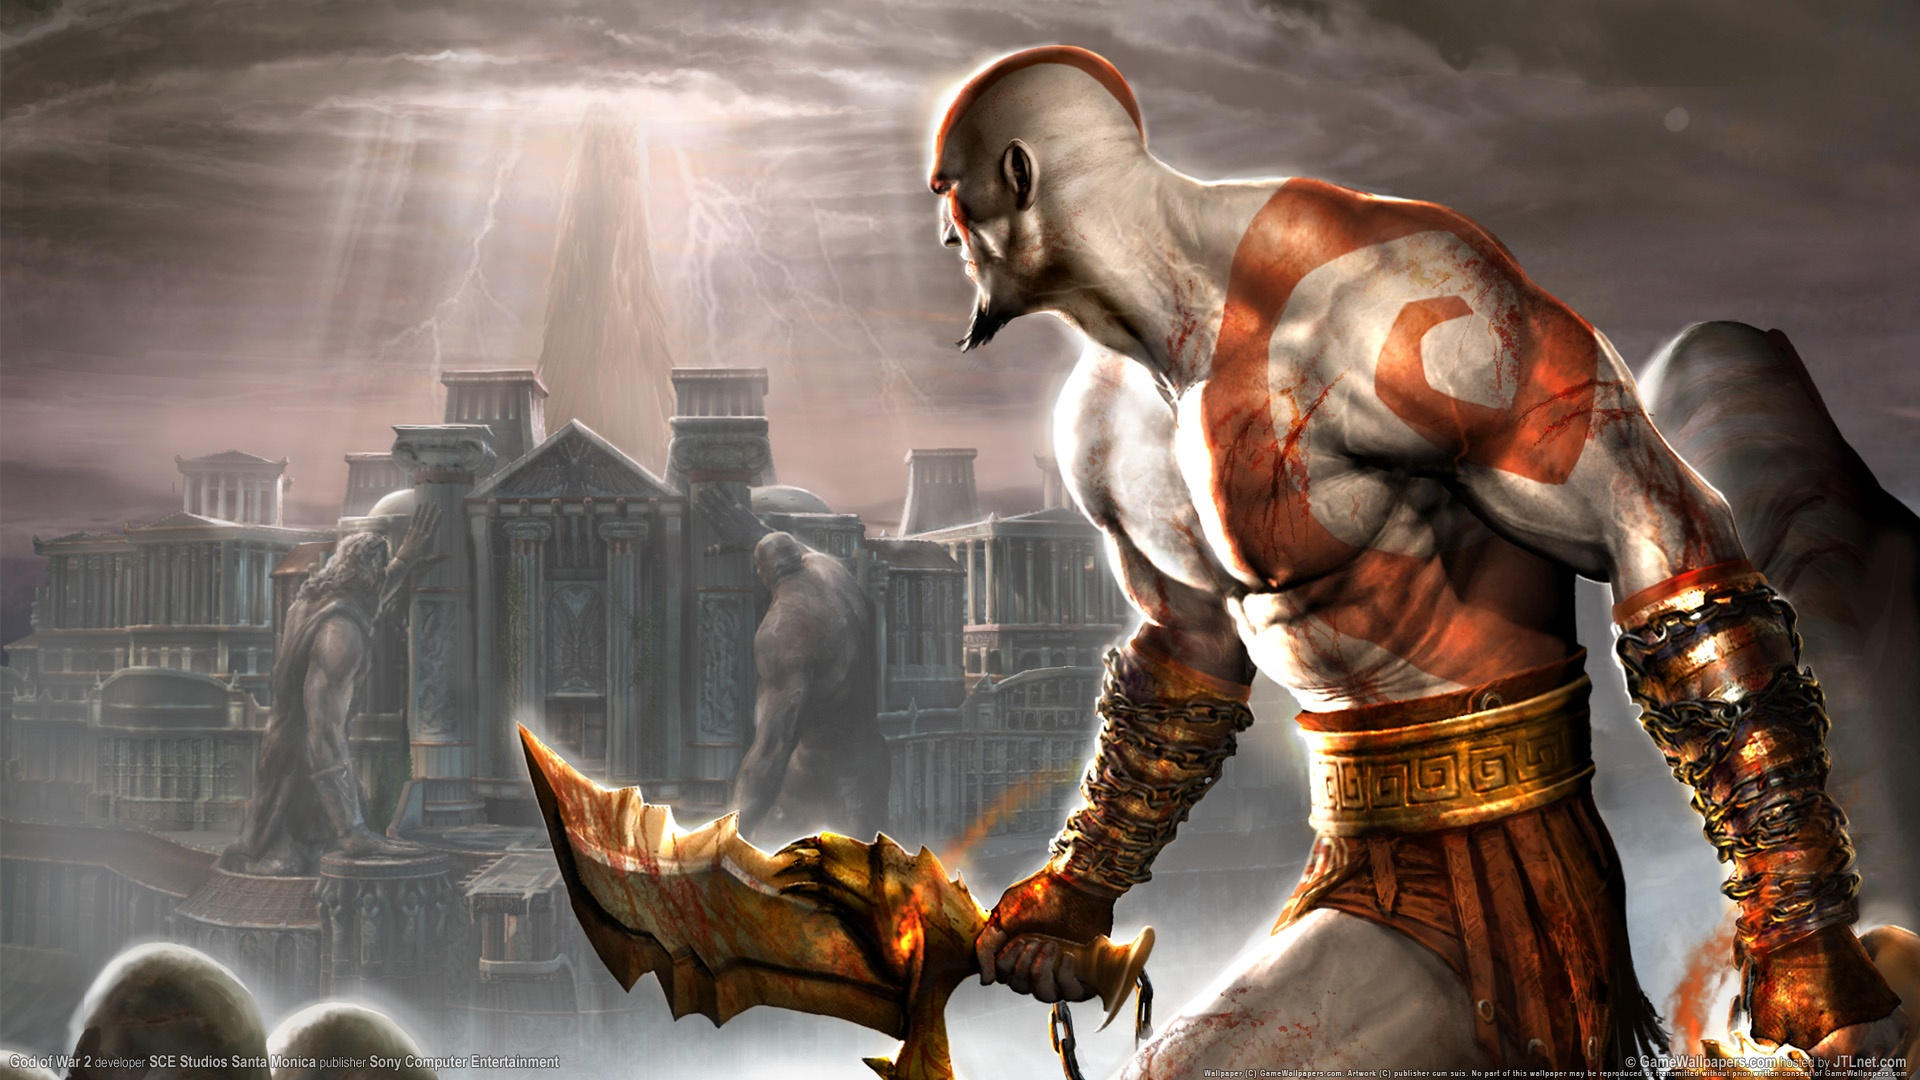 god of war 2 ps2 game wallpapers in jpg format for free download